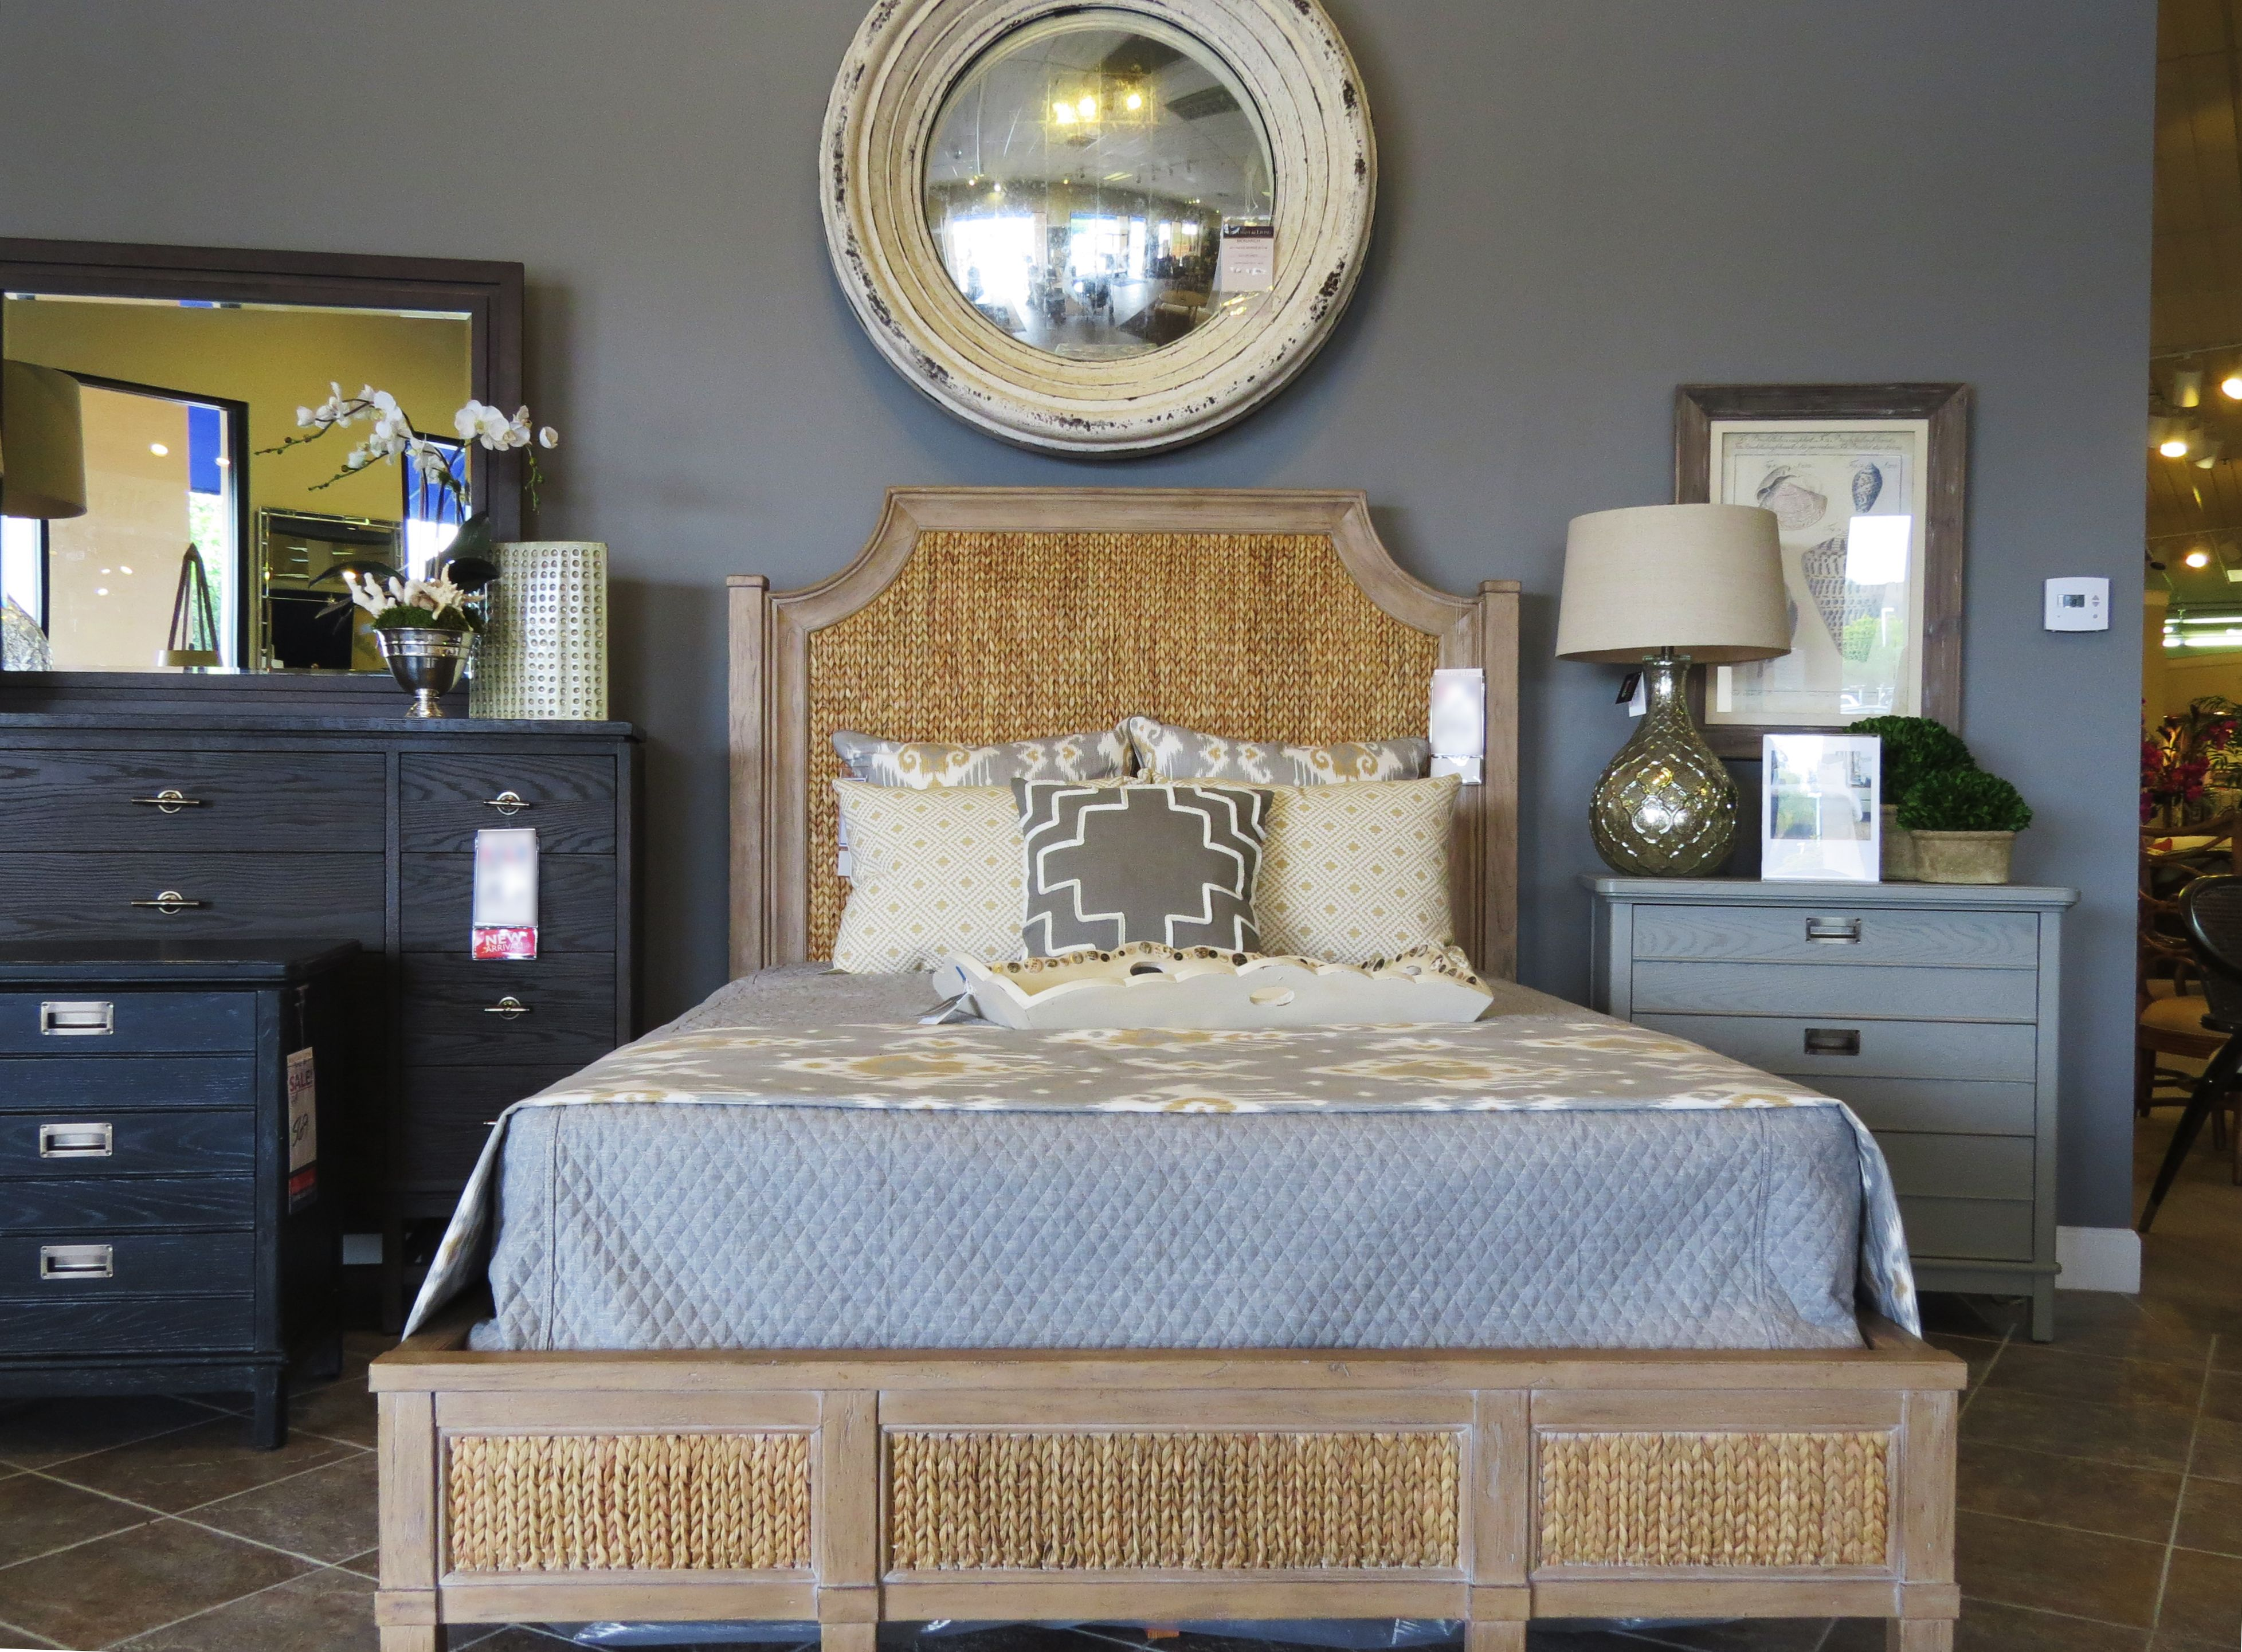 Huntington Bedroom Furniture Modern Bedroom From West Coast Living Thomasville In Laguna Niguel